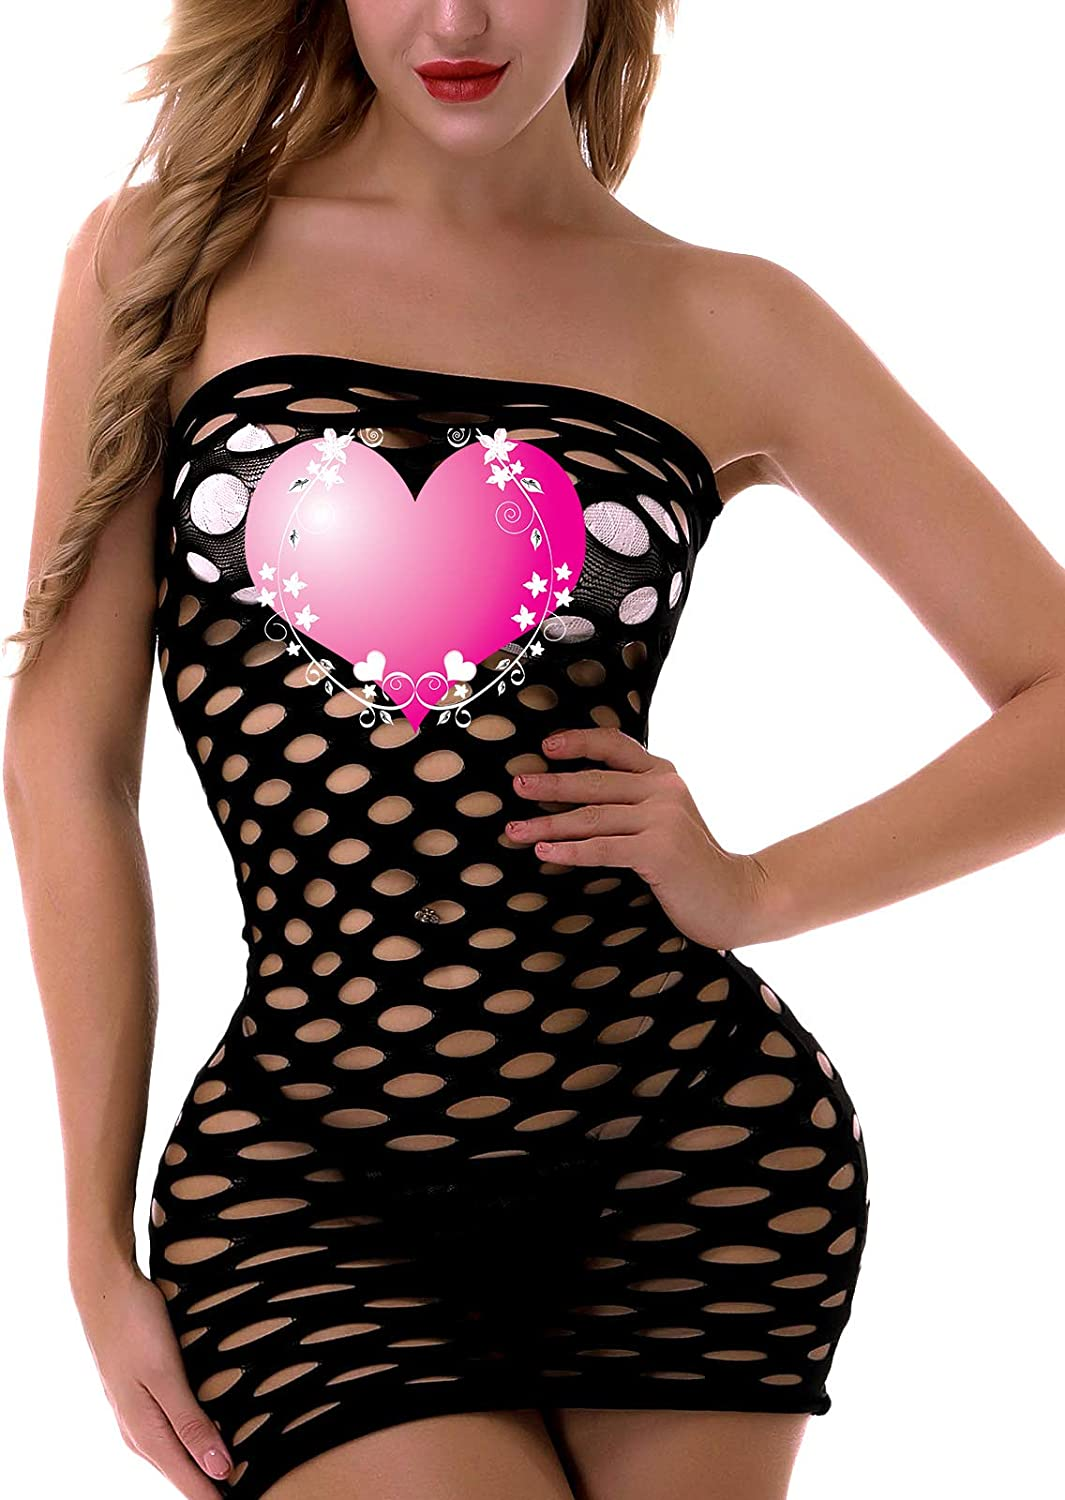 FasiCat Womens Mesh Lingerie Fishnet Babydoll Mini Dress Free Size Bodysuit